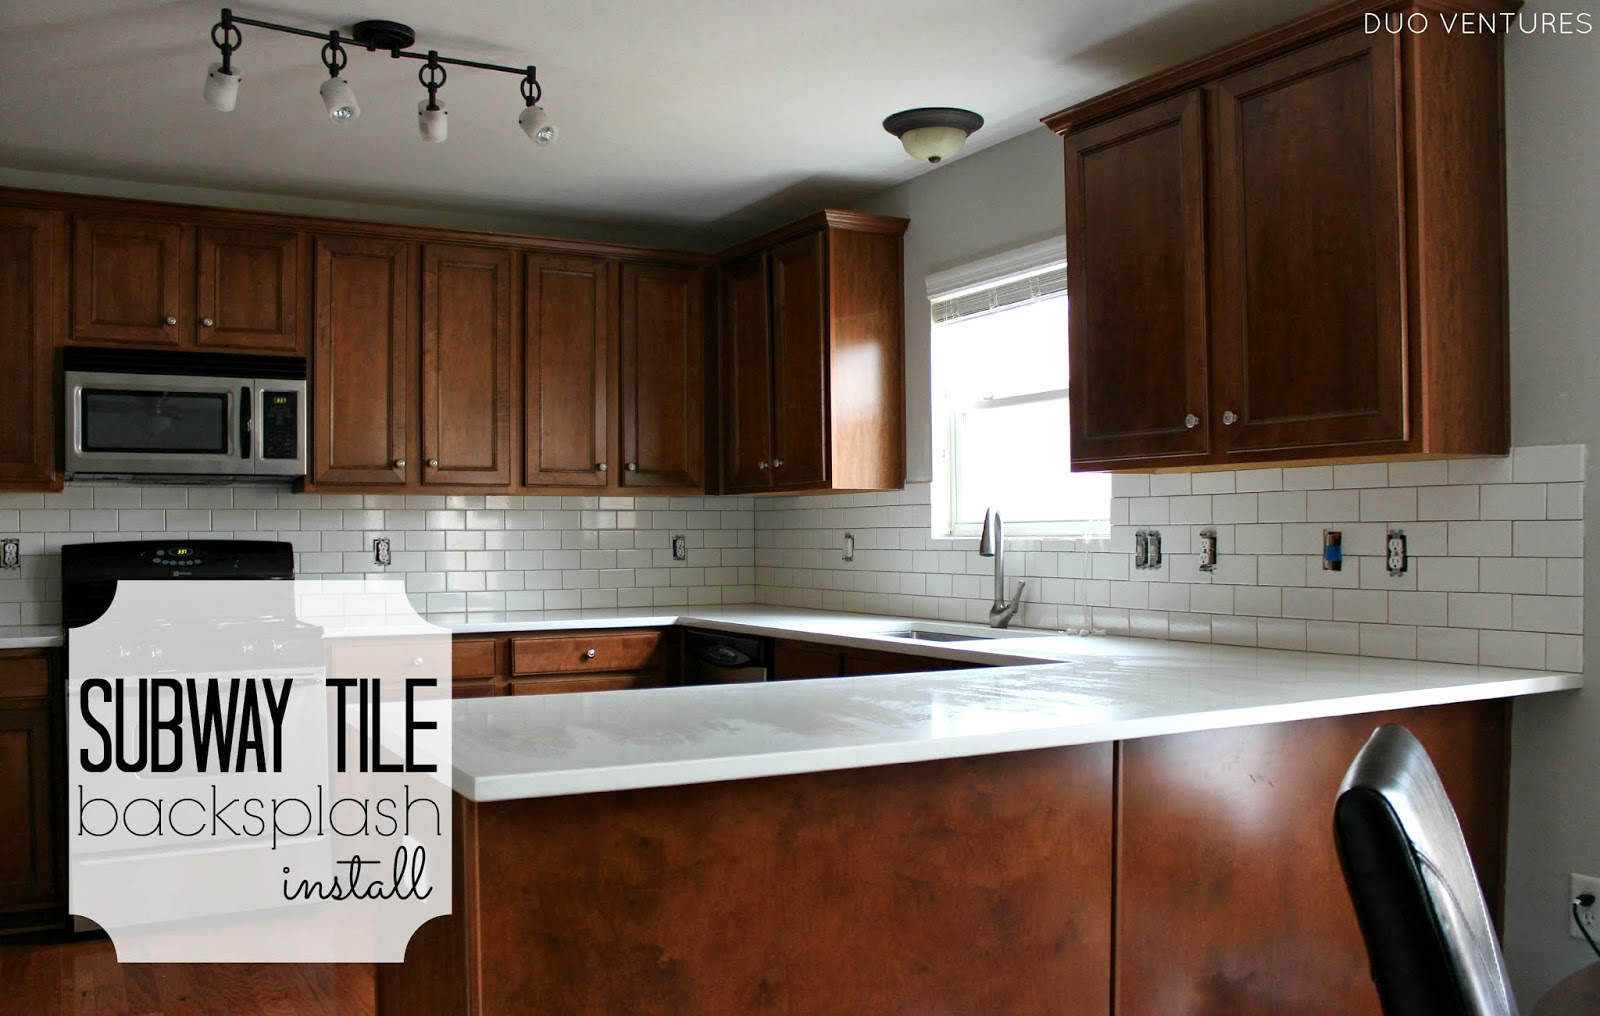 Kitchen Design Subway Tile Backsplash Duo Ventures Kitchen Makeover Subway Tile Backsplash